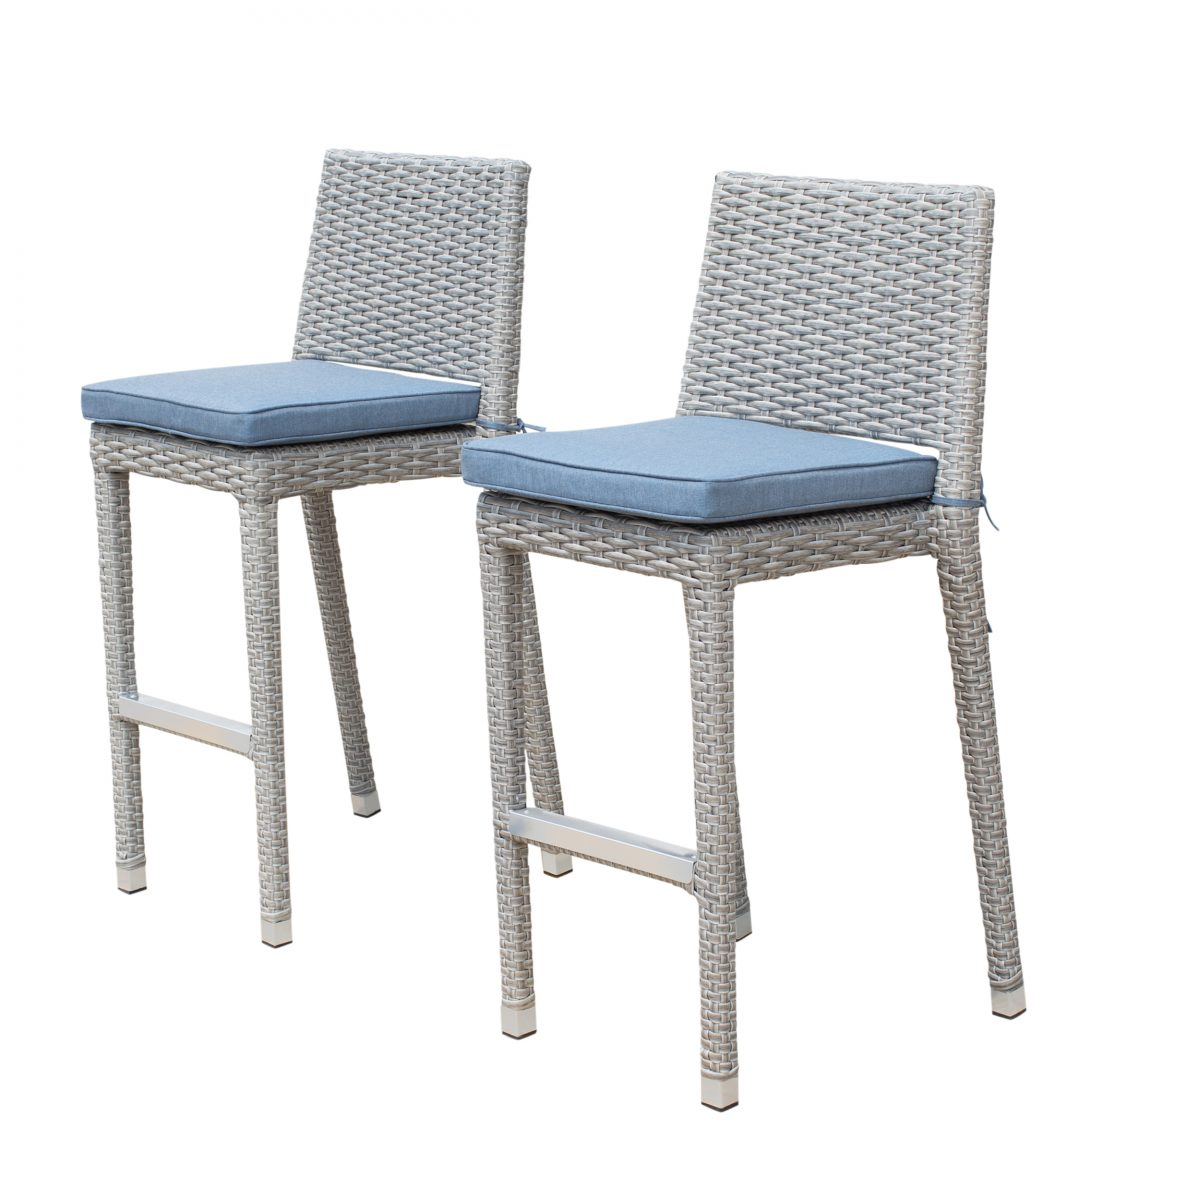 Sirio Niko Ash Grey Wicker Bar Stool With Denim Blue Cushions (Pack Of 2)